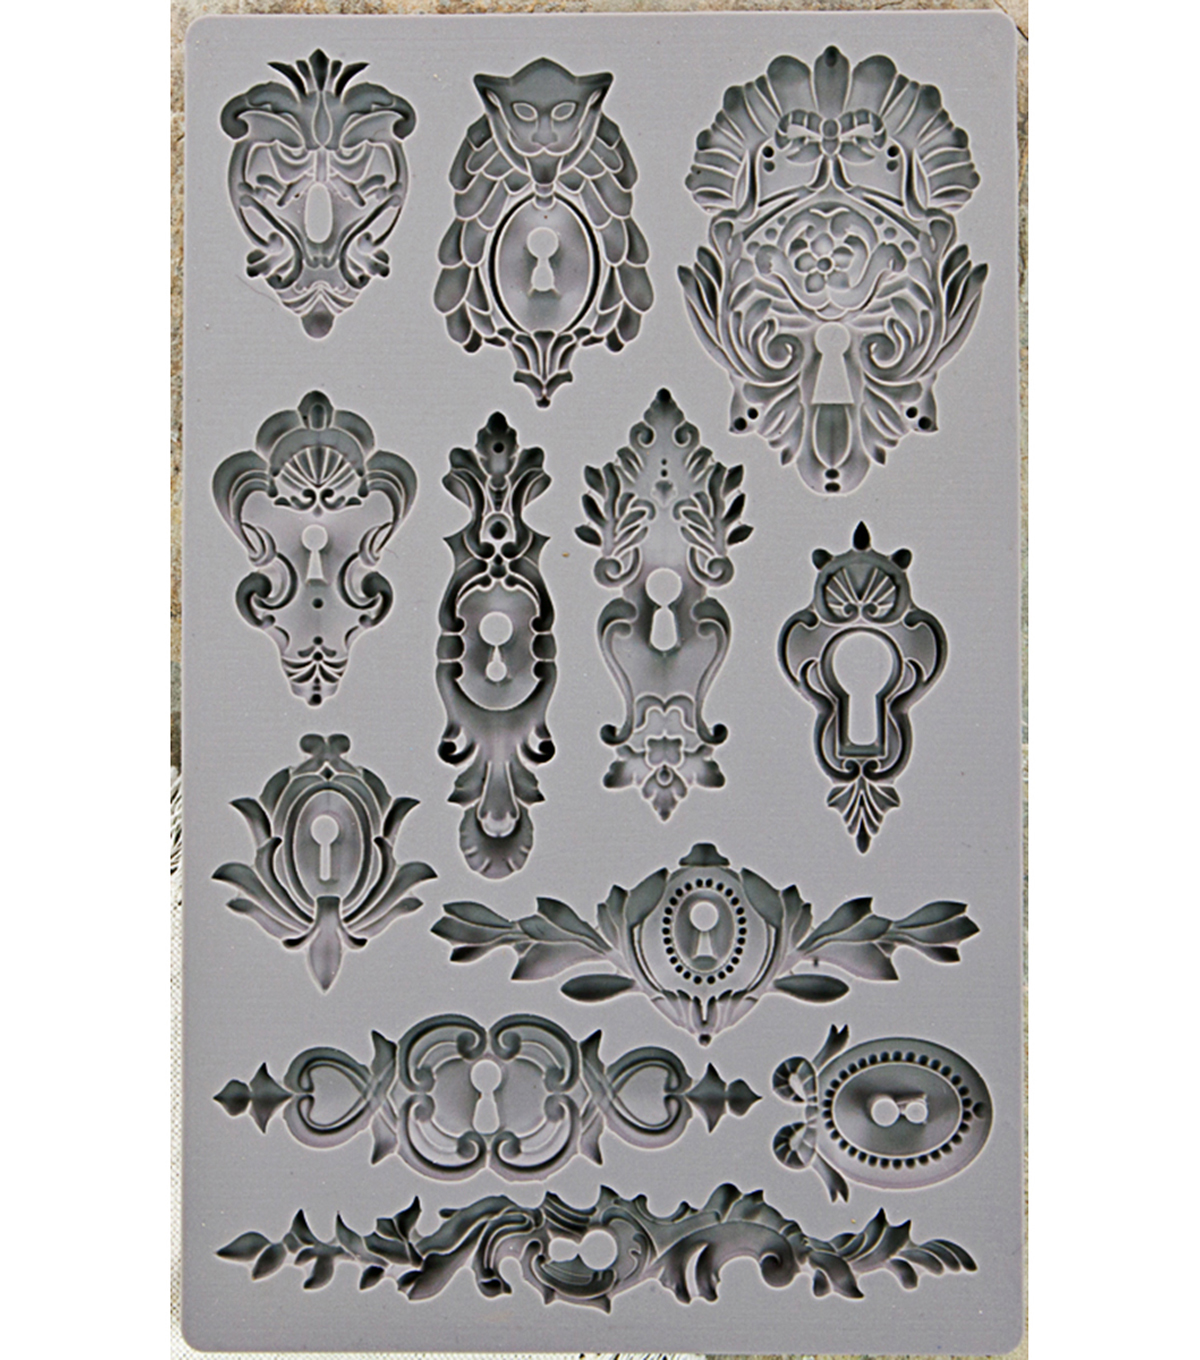 Iron Orchid Designs Vintage Art Decor Mould 5\u0022X8\u0022-Keyholes